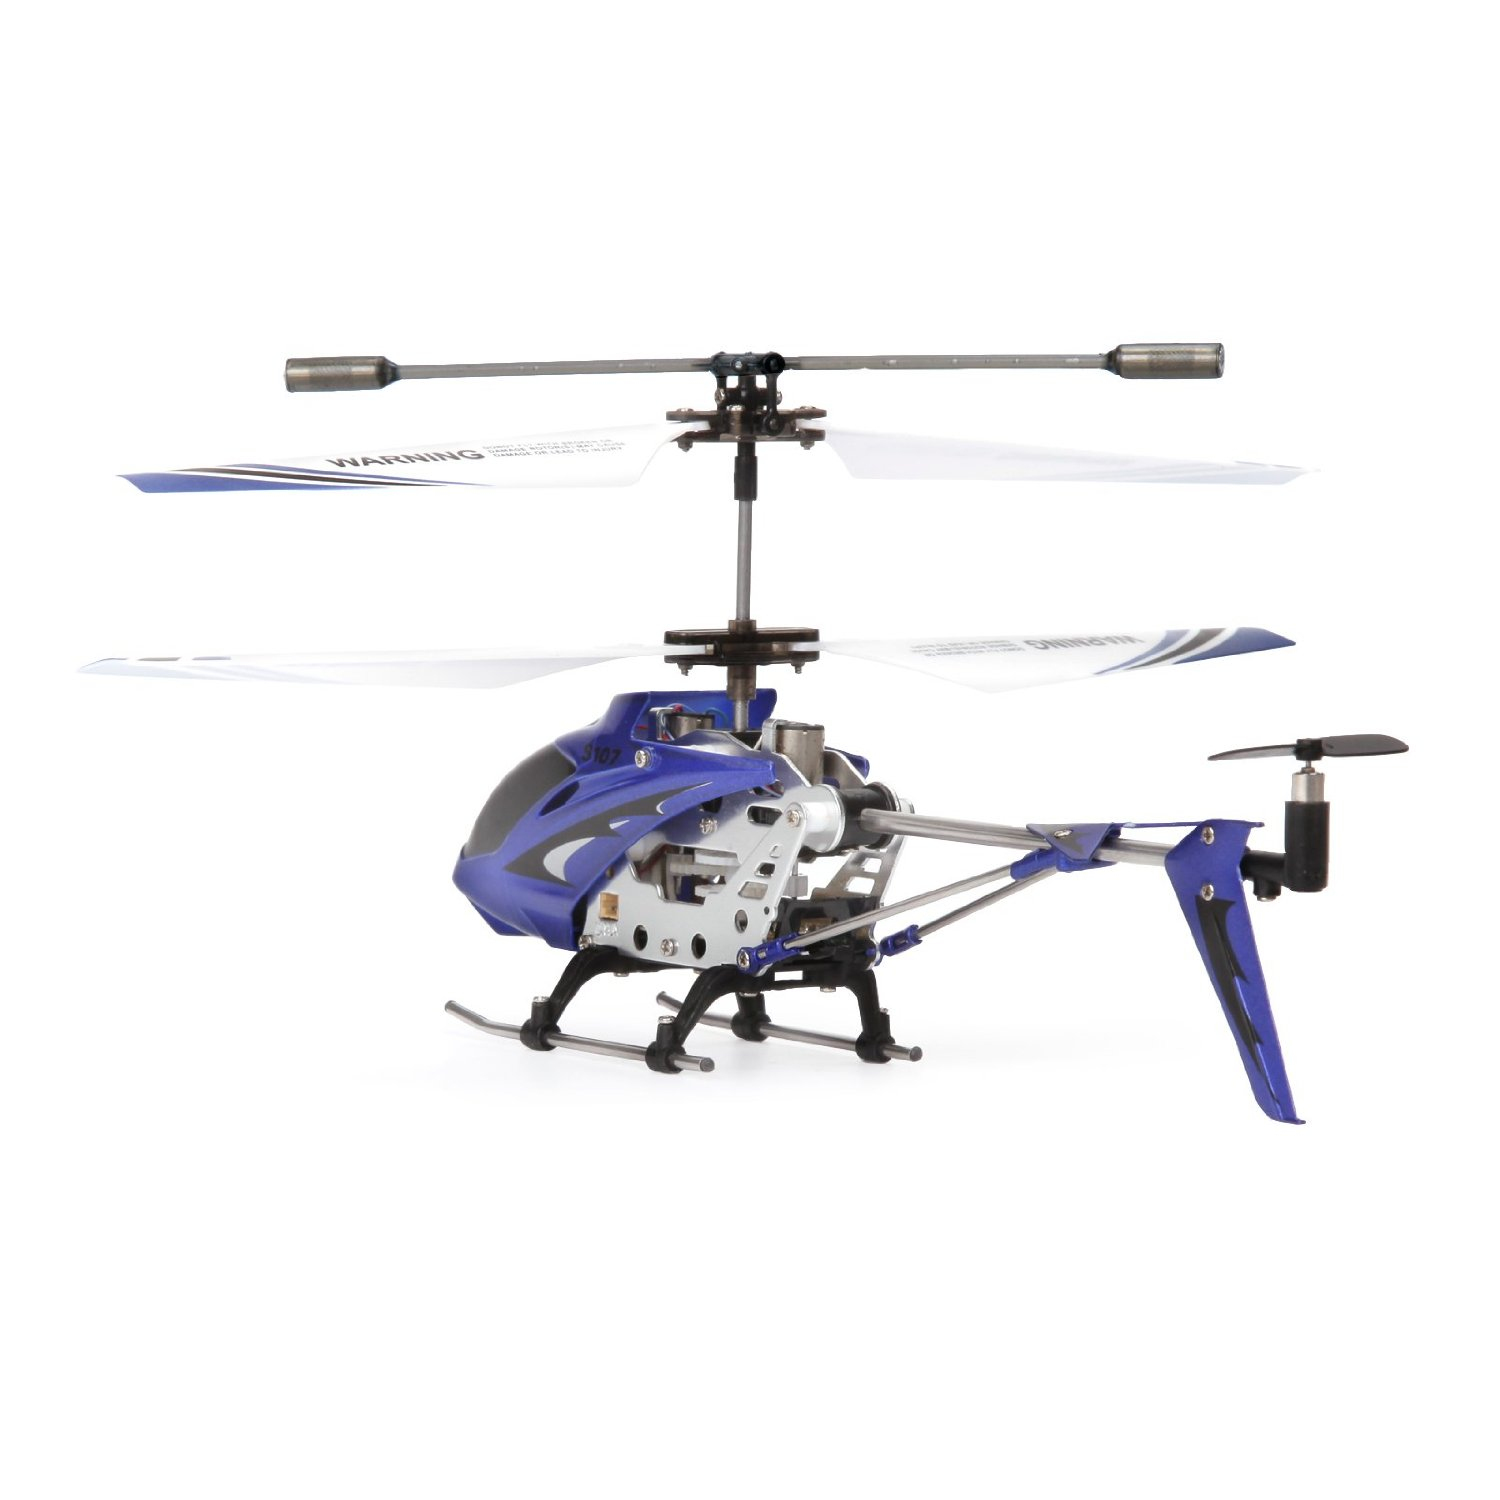 cheerwing s107g 3 5ch rc helicopter phantom mini metal remote